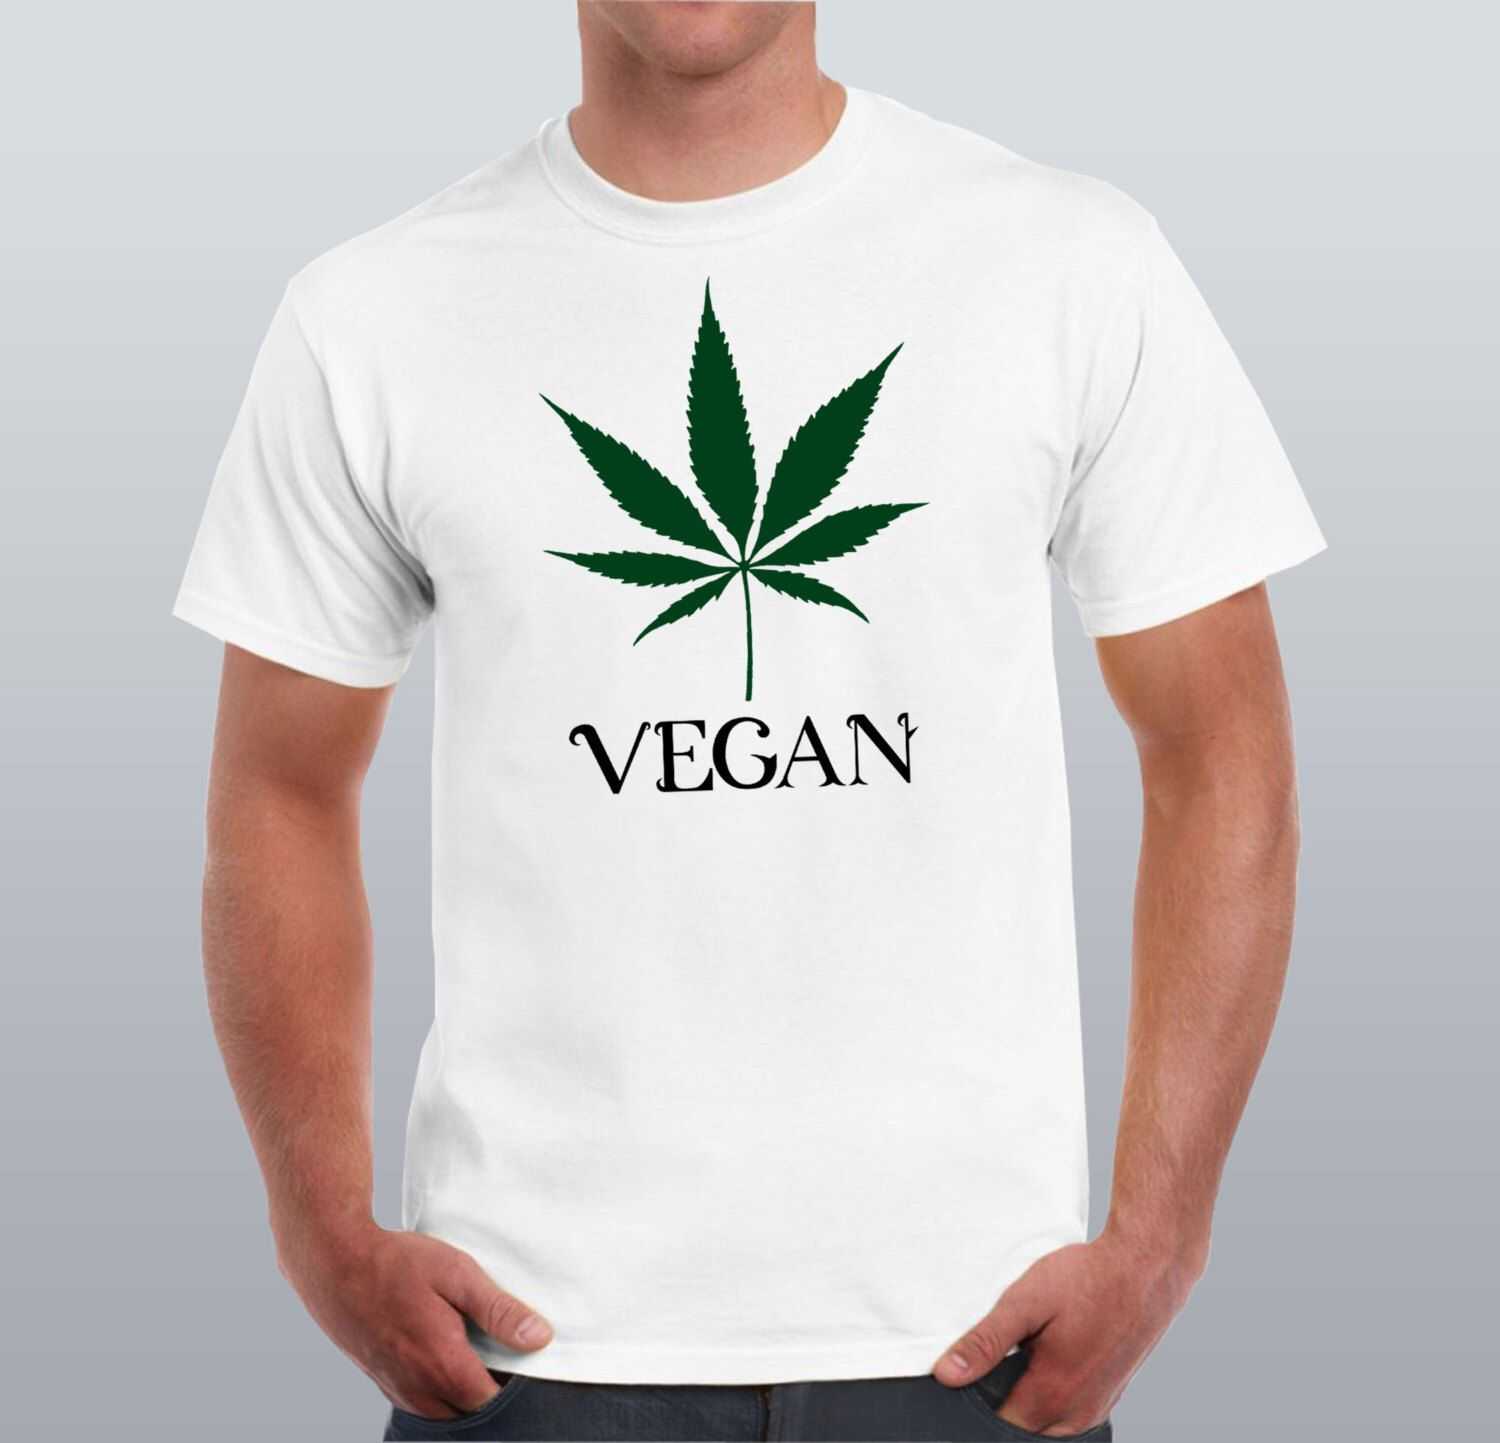 d3d3d51f 10 Kickass Vegan T shirt Brands You Need To Be Wearing